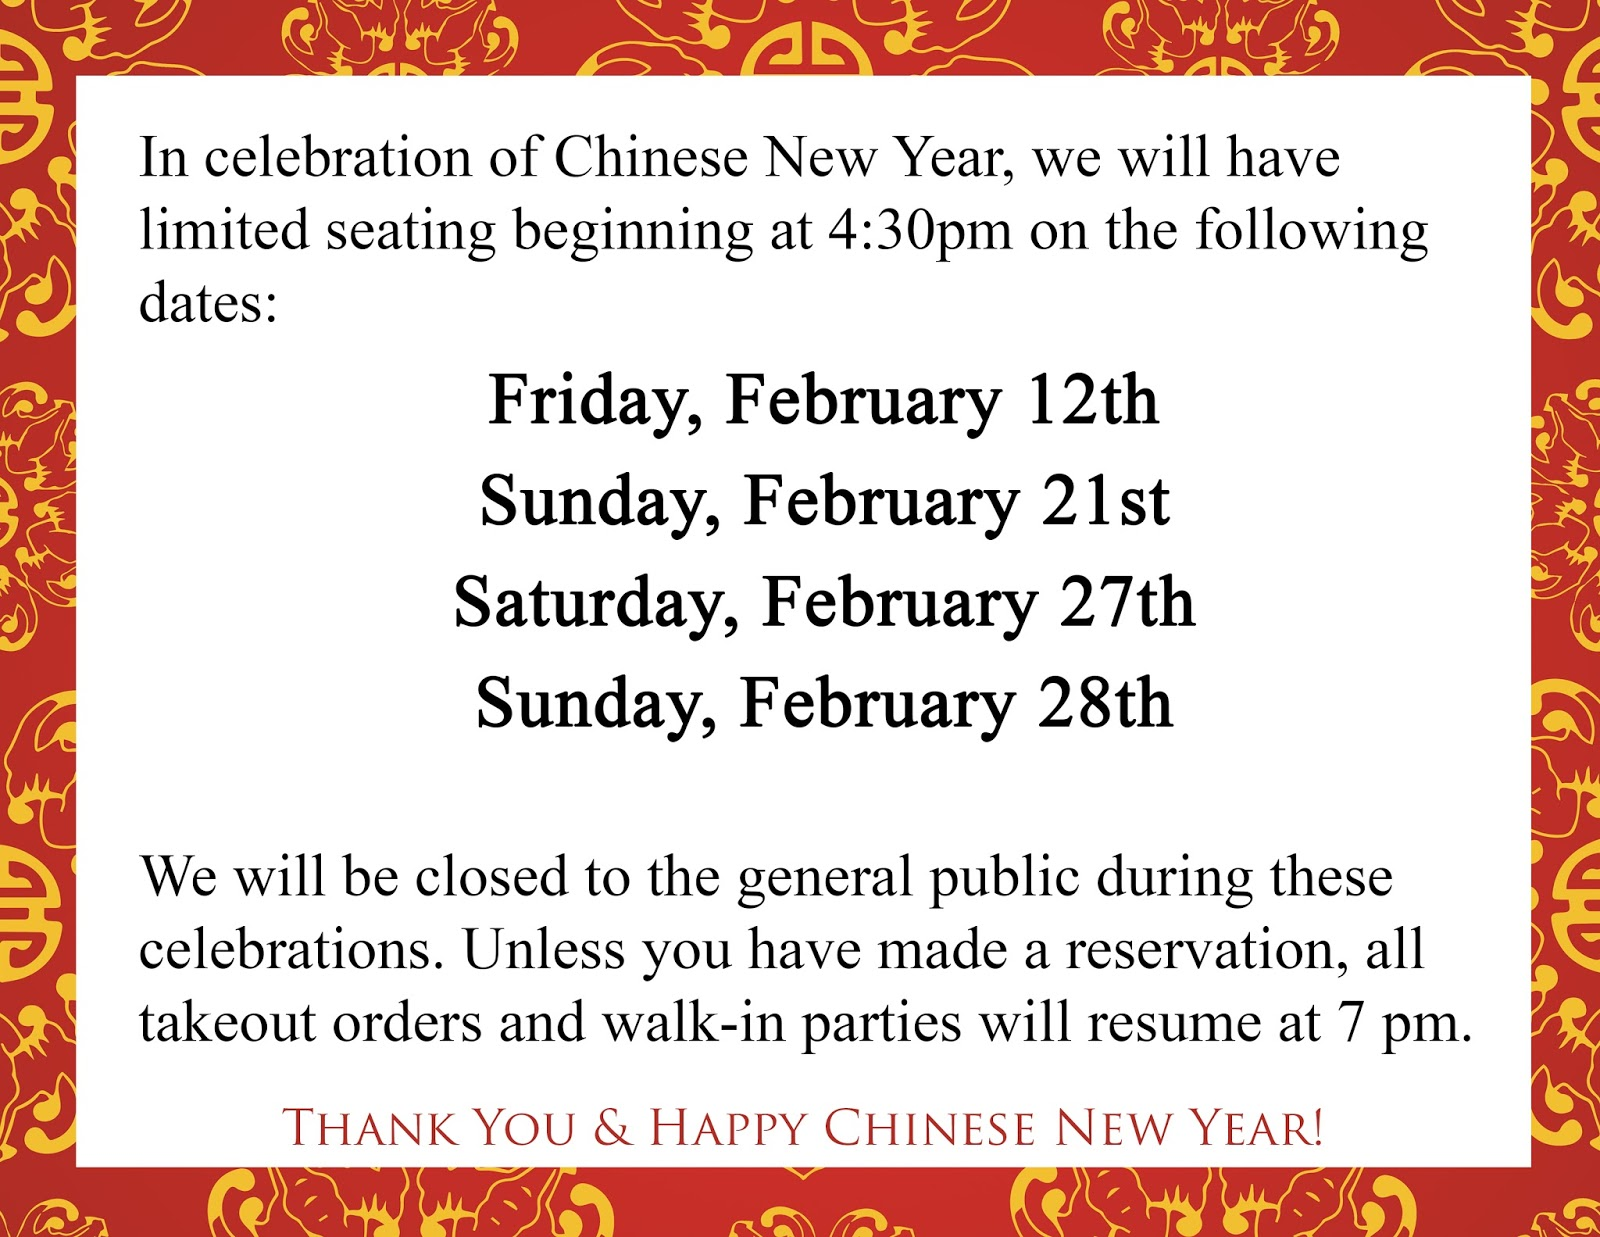 chinese new year is just around the corner so please take note of the dates and details below - Chinese New Year Dates